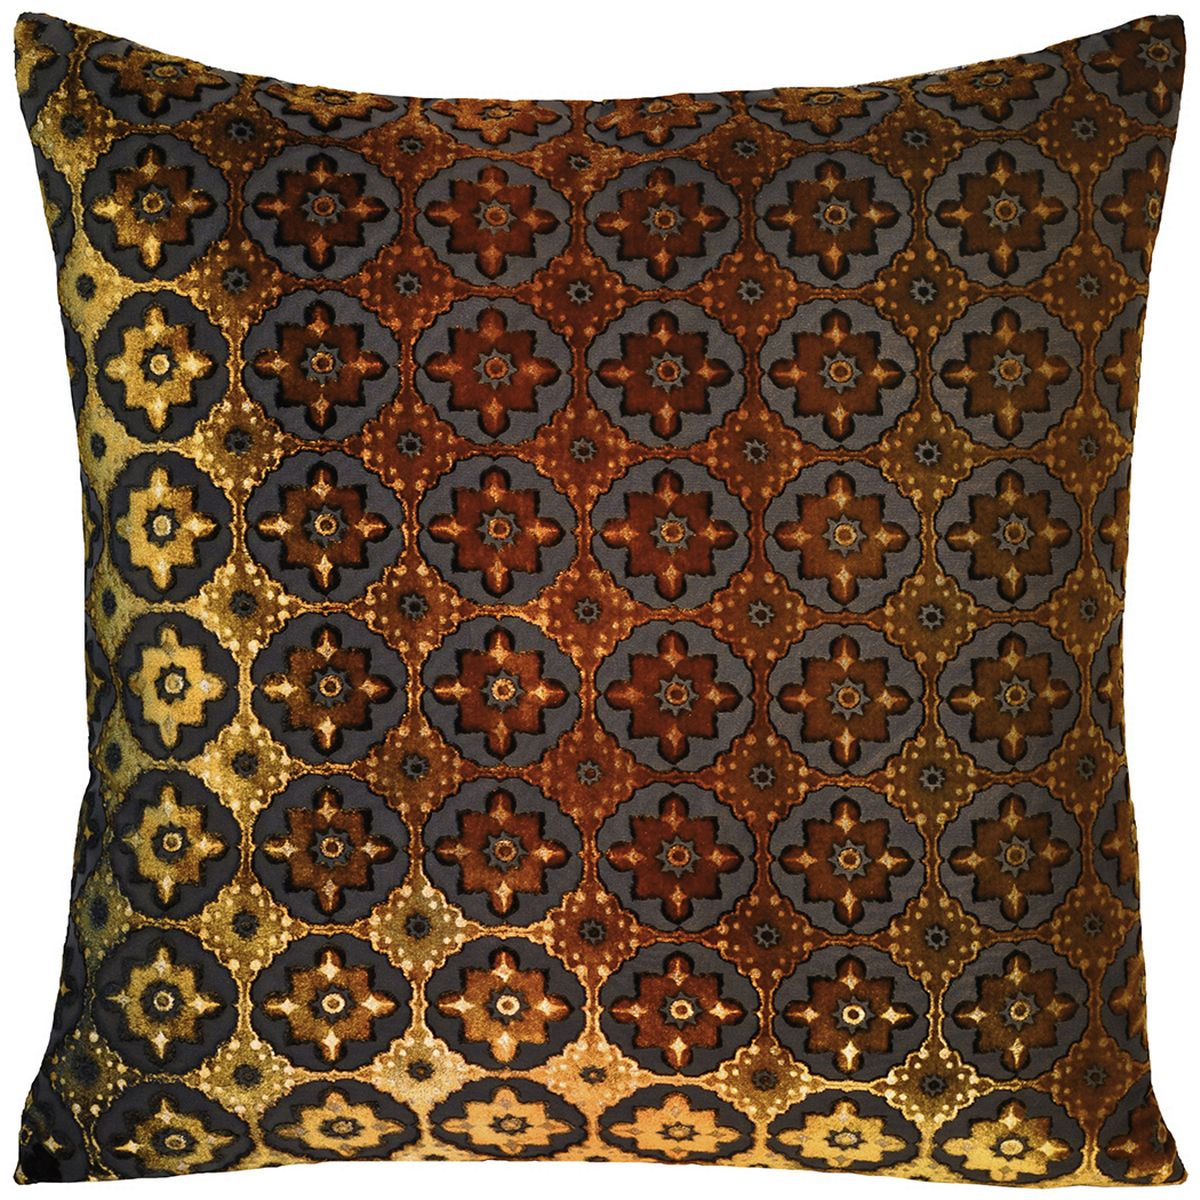 Kevin o 39 brien studio small moroccan velvet decorative pillow for Small decorative throw pillows